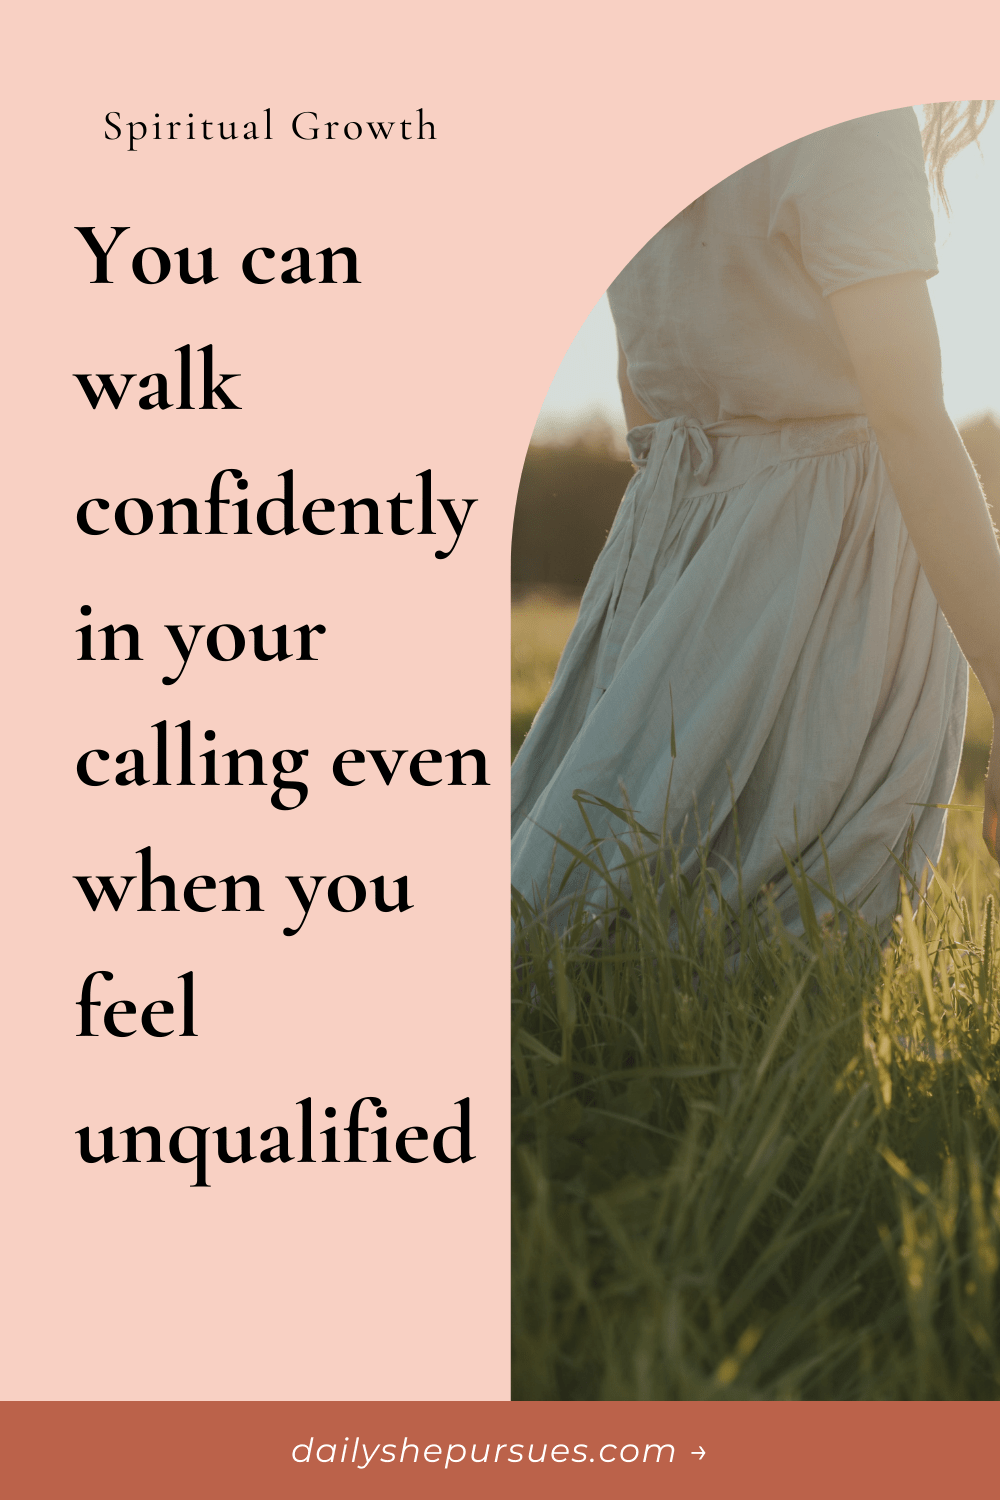 """Image of woman in blue dress in grass with text overlay """"You can walk confidently in your calling even when you feel unqualified"""""""